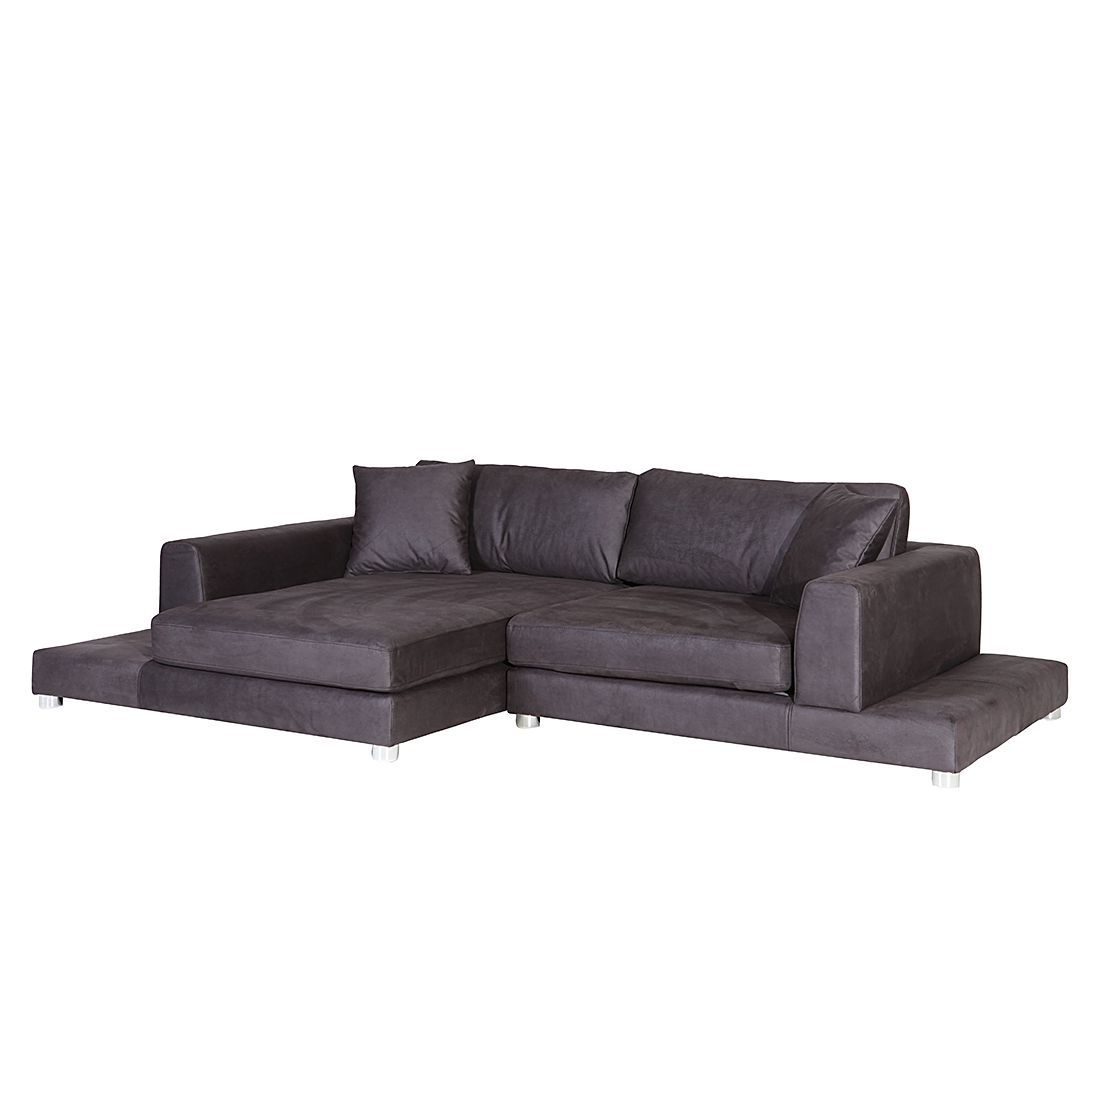 ecksofa alea klein kunstleder grau longchair. Black Bedroom Furniture Sets. Home Design Ideas